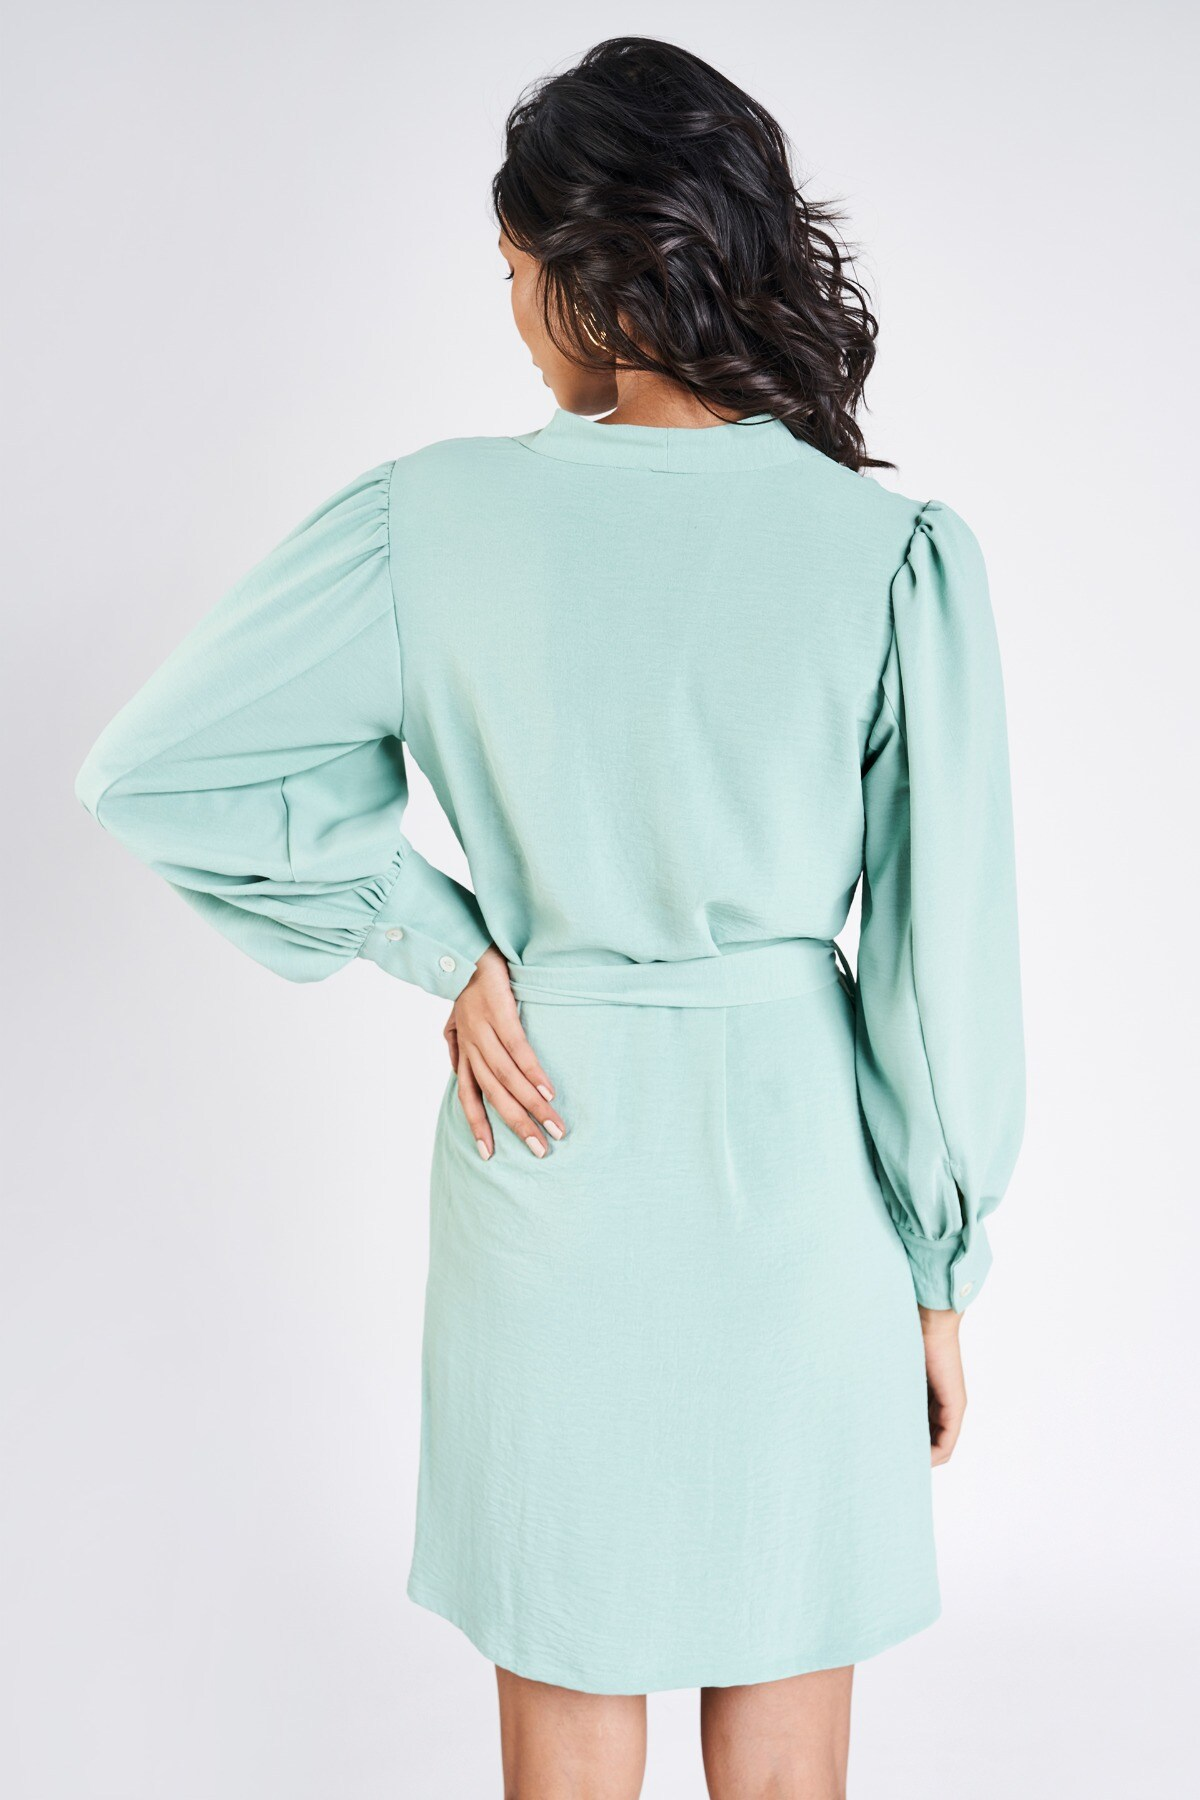 AND | Teal Solid A-Line Dress